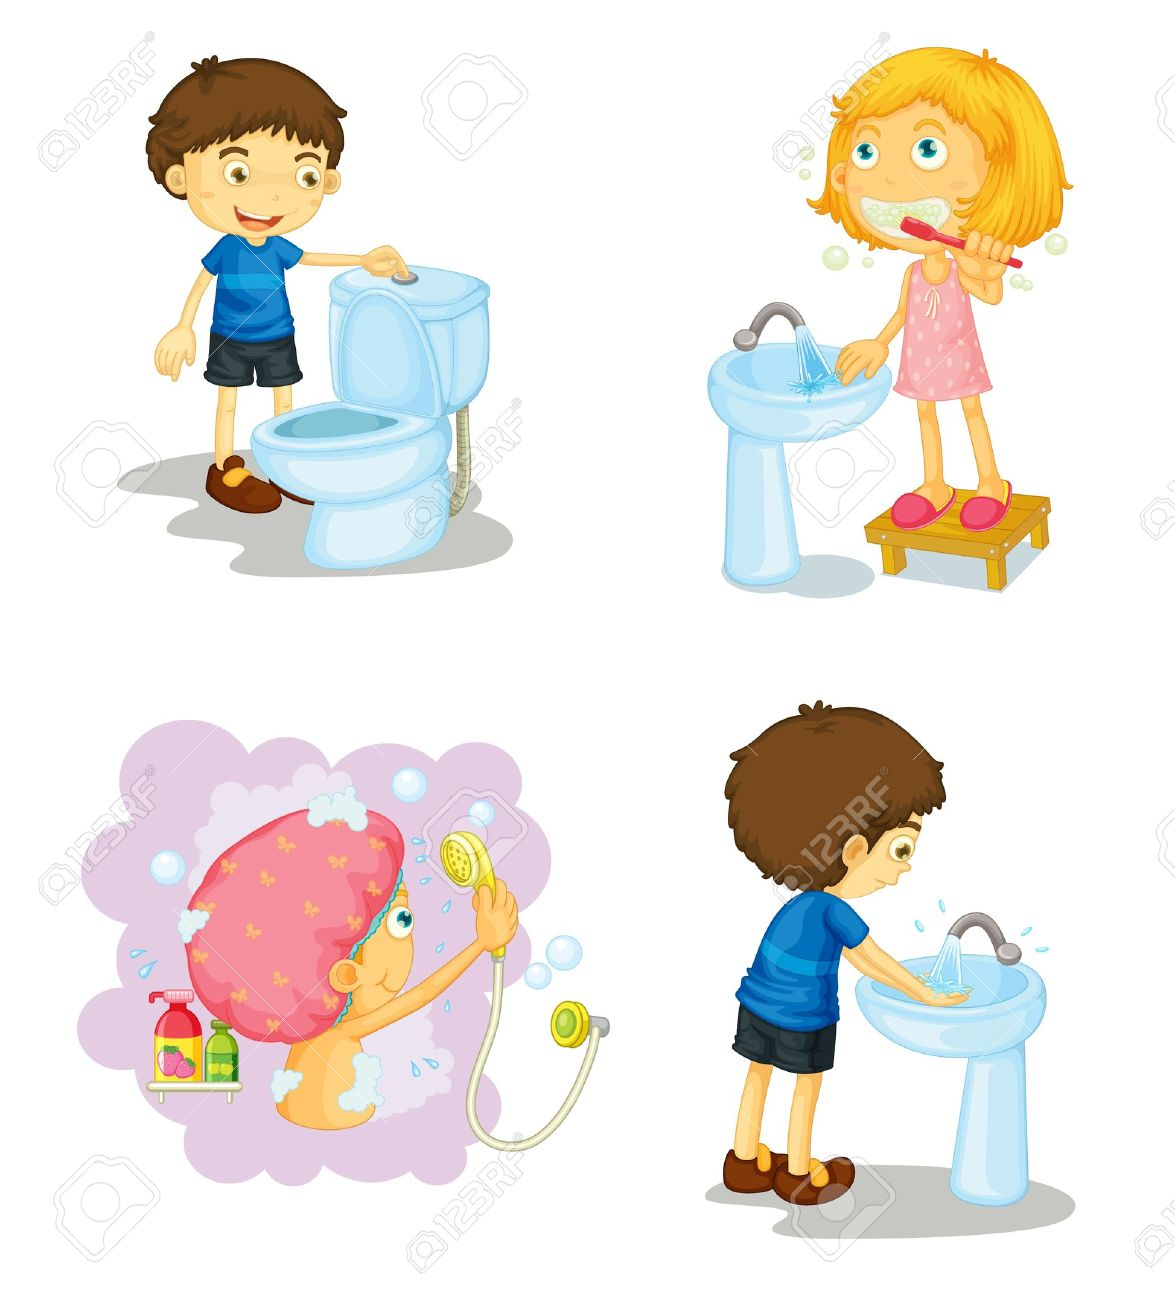 Bathroom mirror clip art - Bathroom Mirror Illustration Of Kids And Bathroom Accessories On A White Background